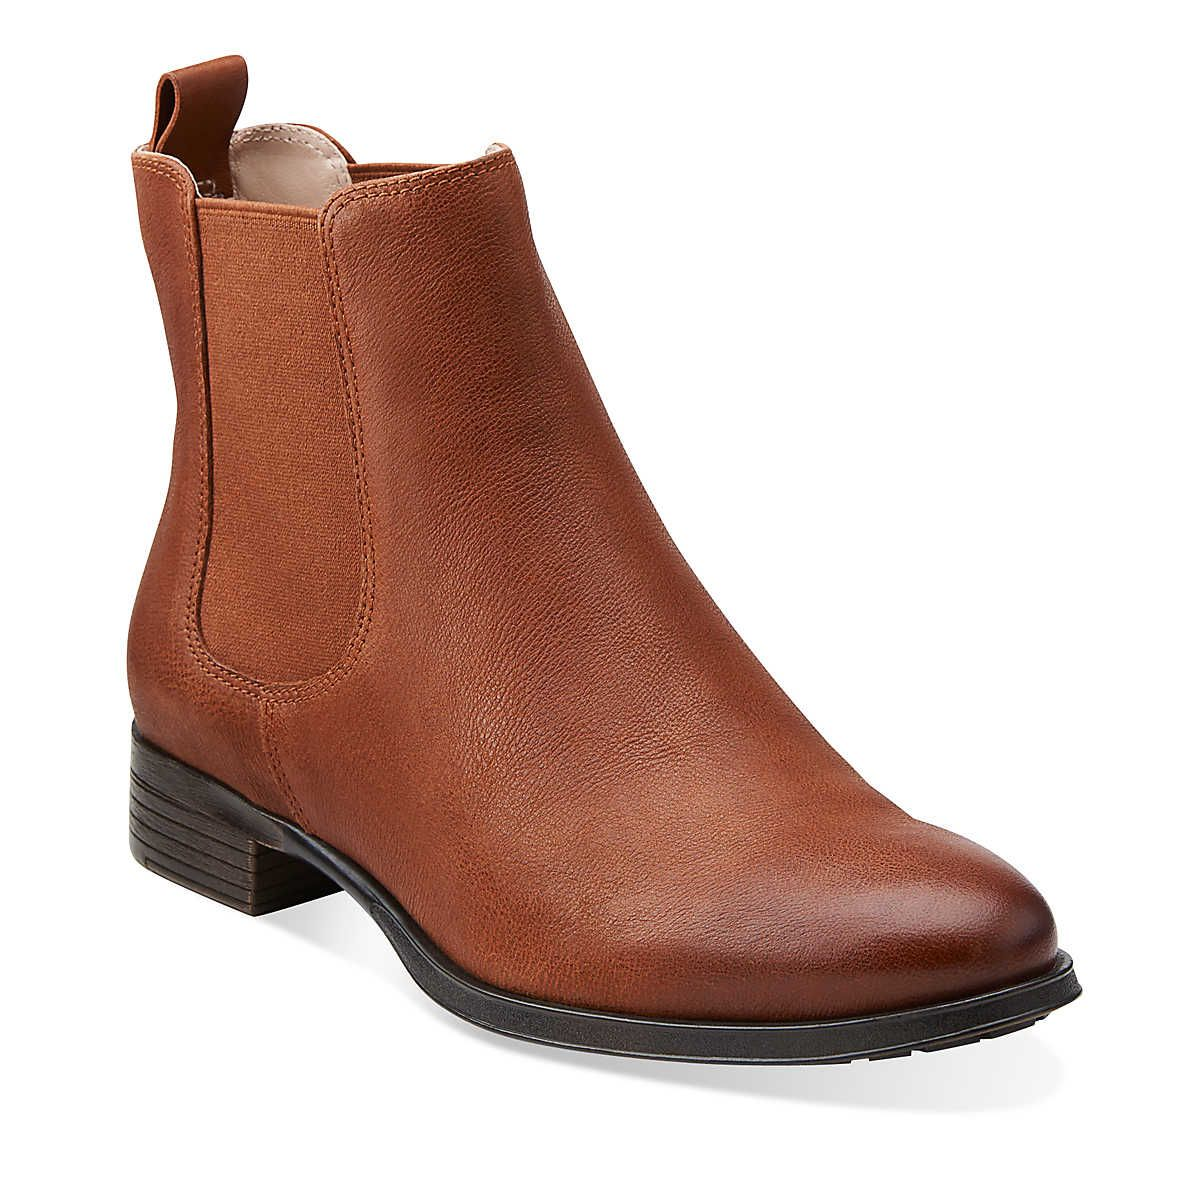 Mariella Busby in Dark Tan Leather - Womens Boots from Clarks